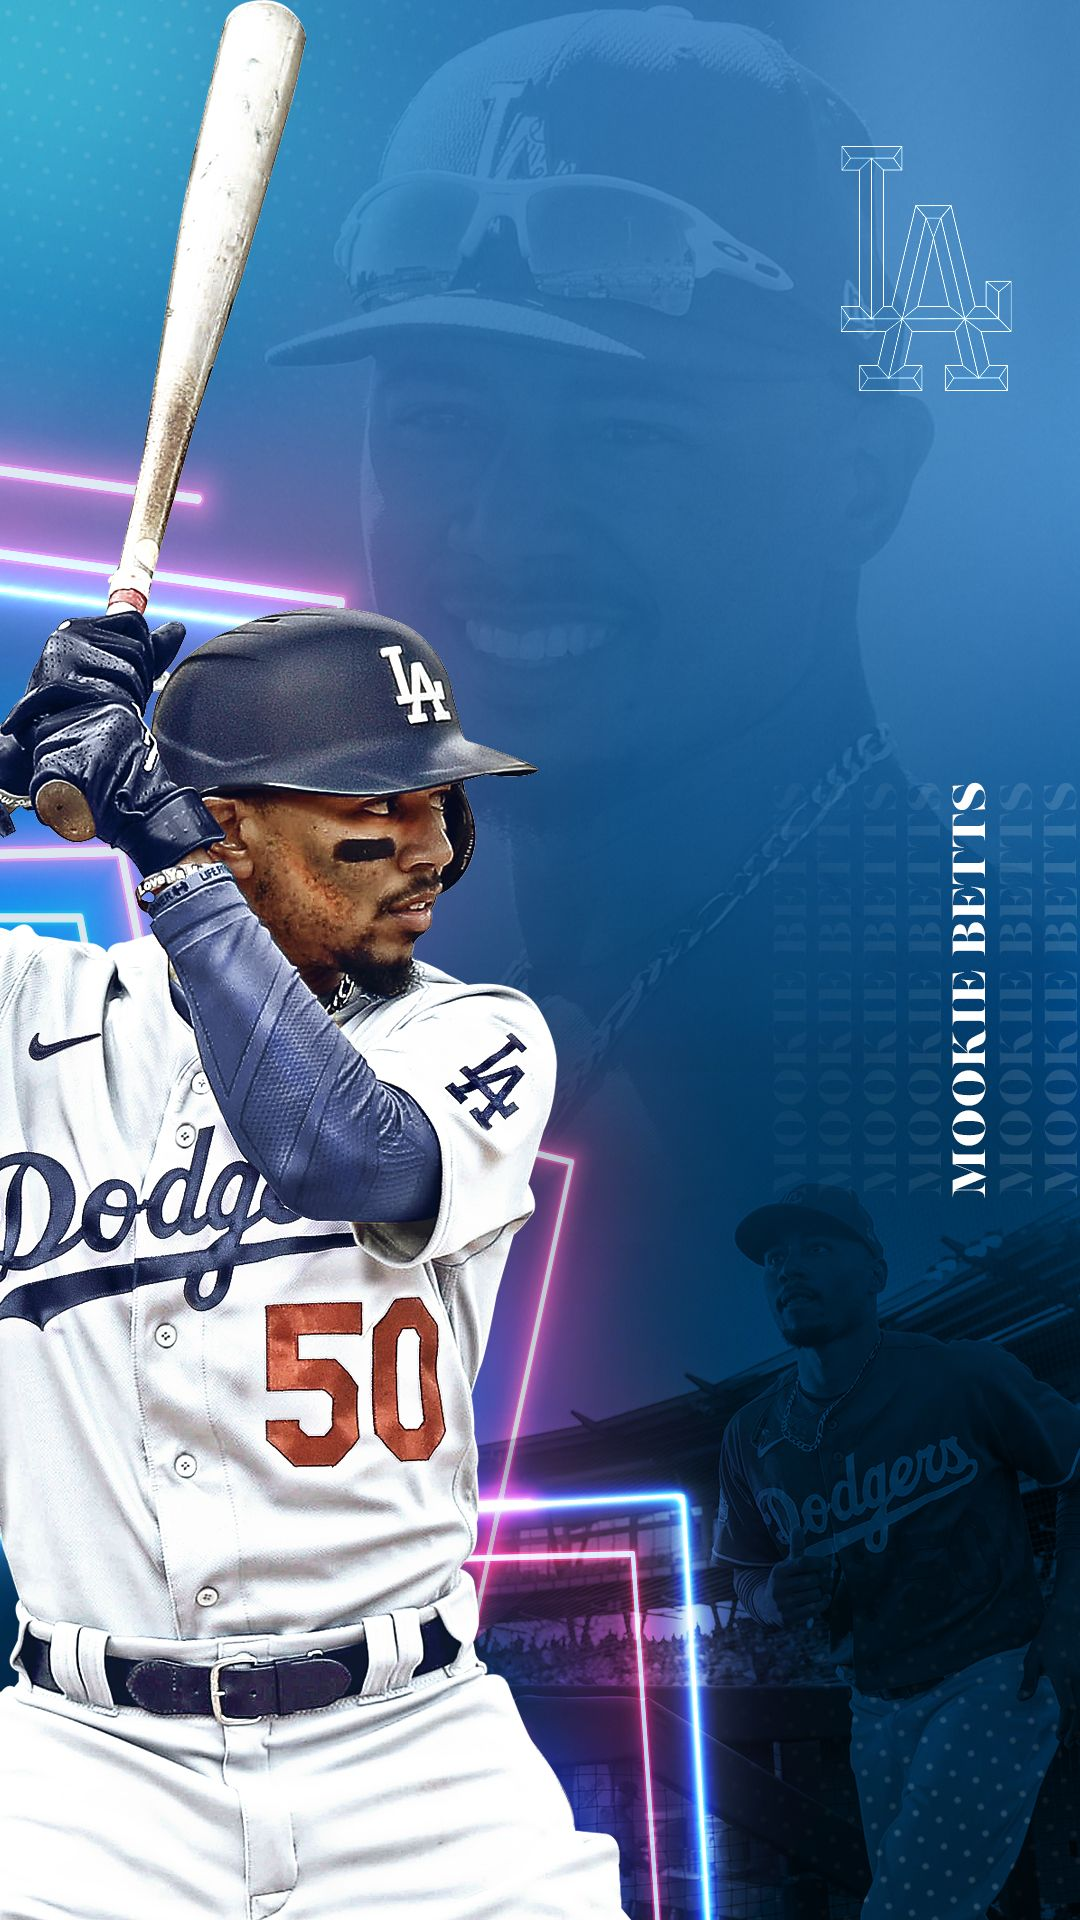 Los Angeles Dodgers On Twitter In 2020 Dodgers Baseball La Dodgers Baseball Dodgers